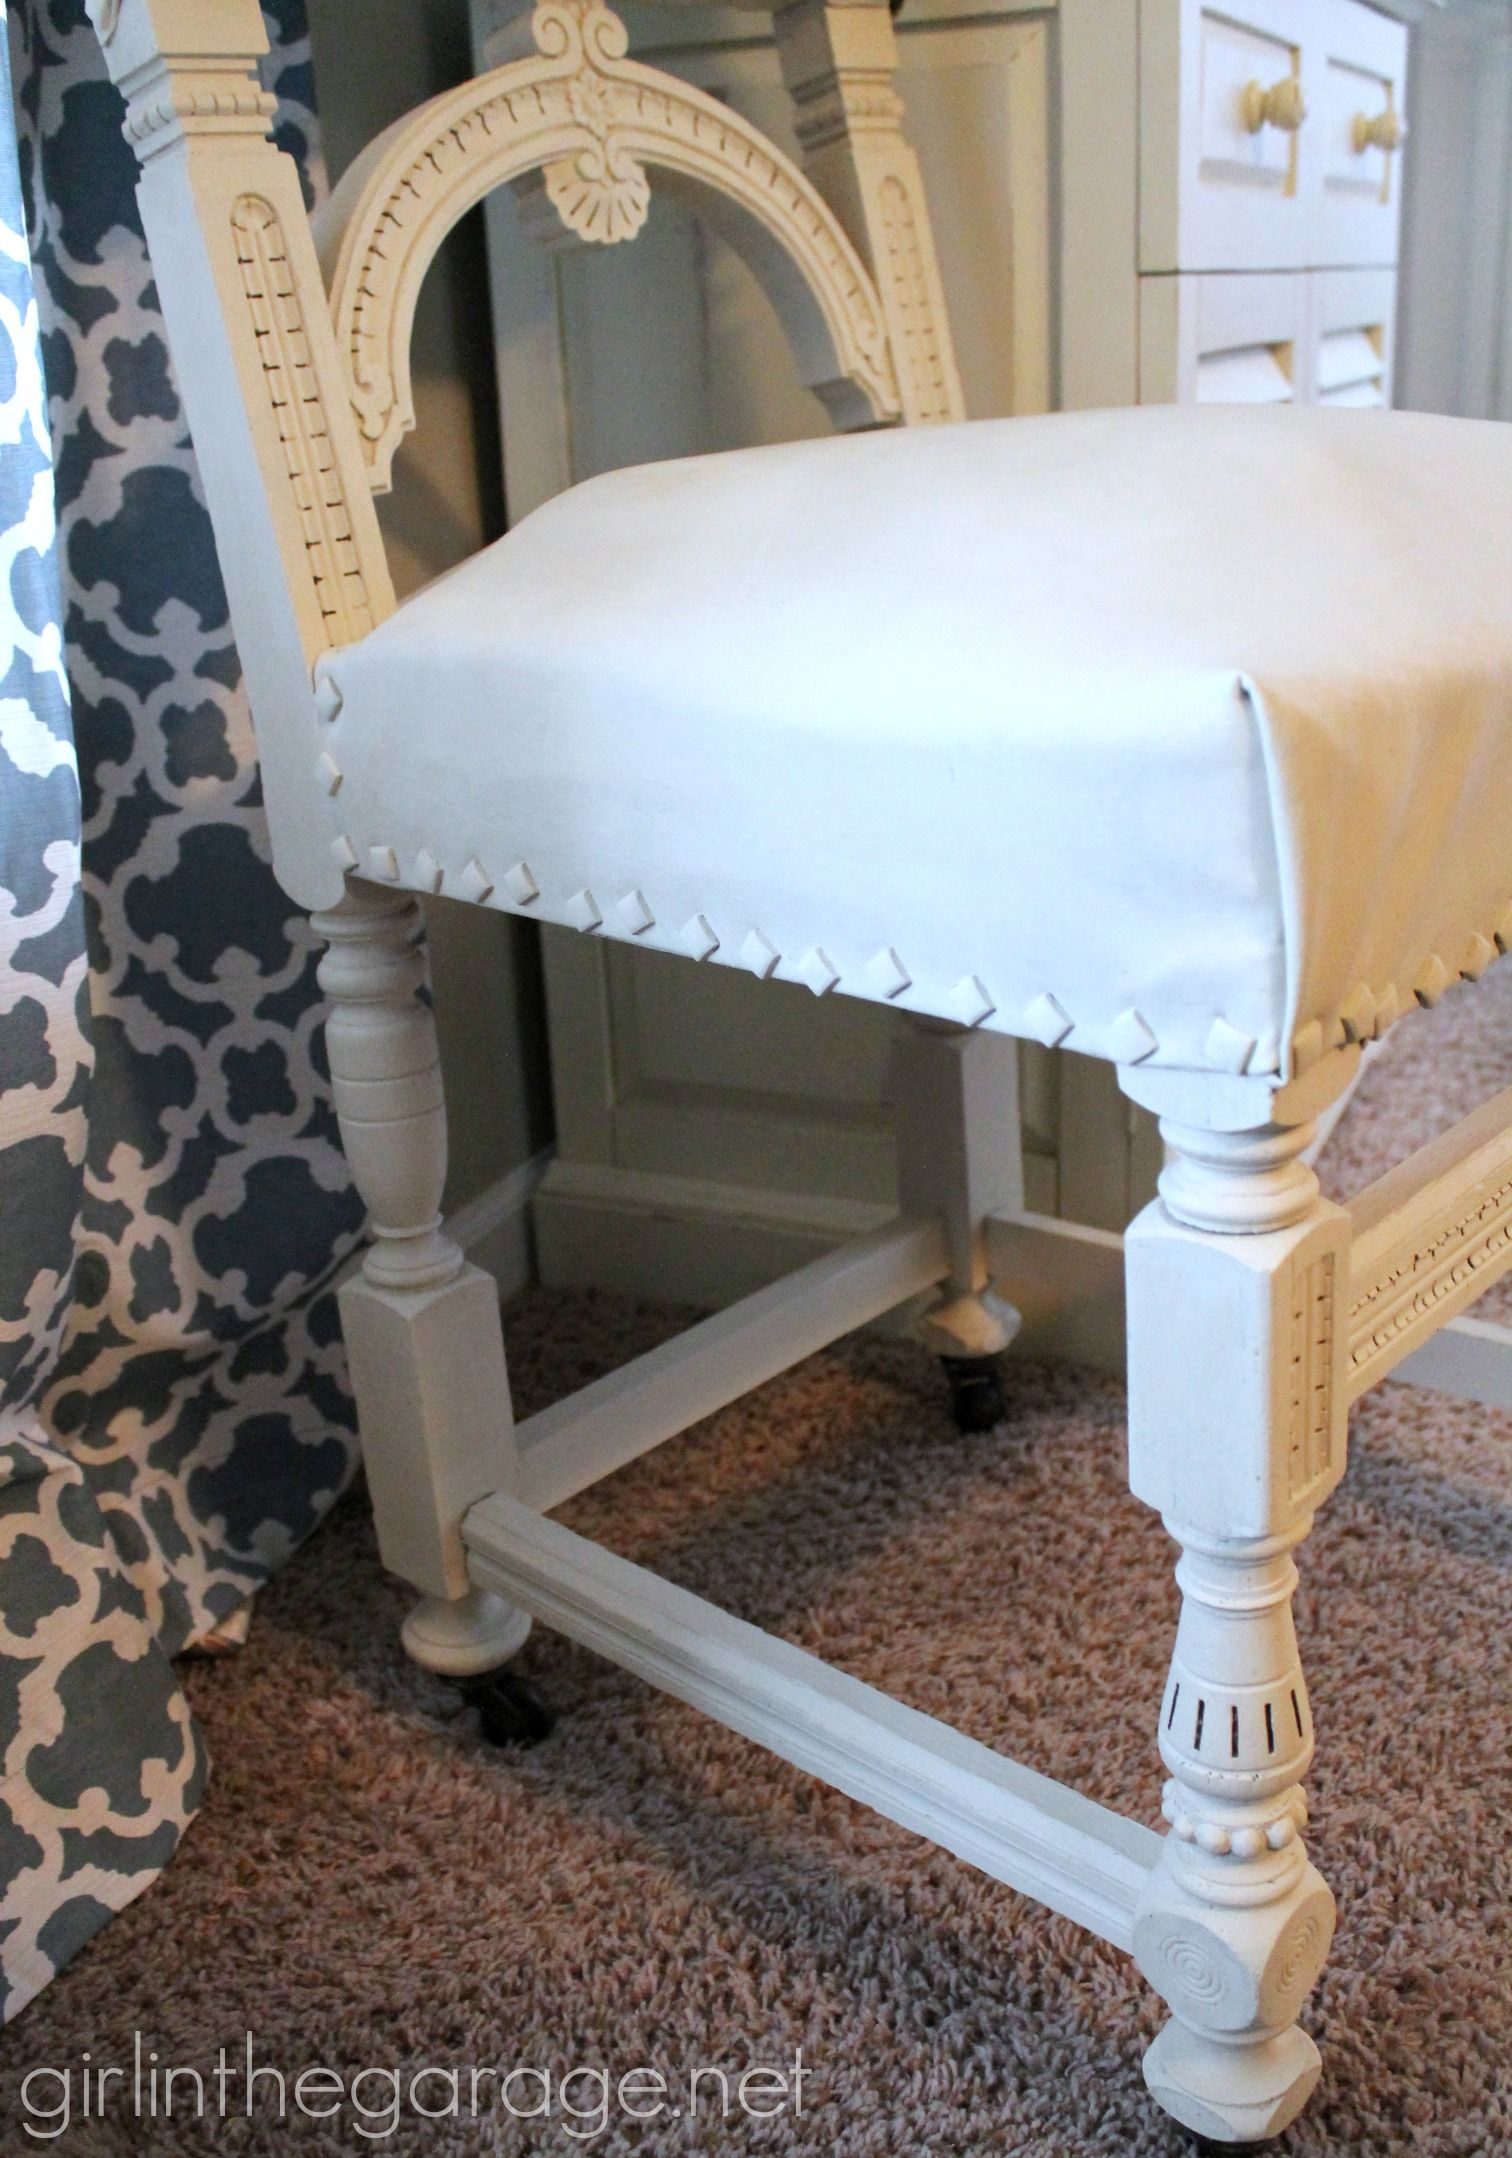 Painted Leather Chair Makeover With Annie Sloan Chalk Paint    Girlinthegarage.net